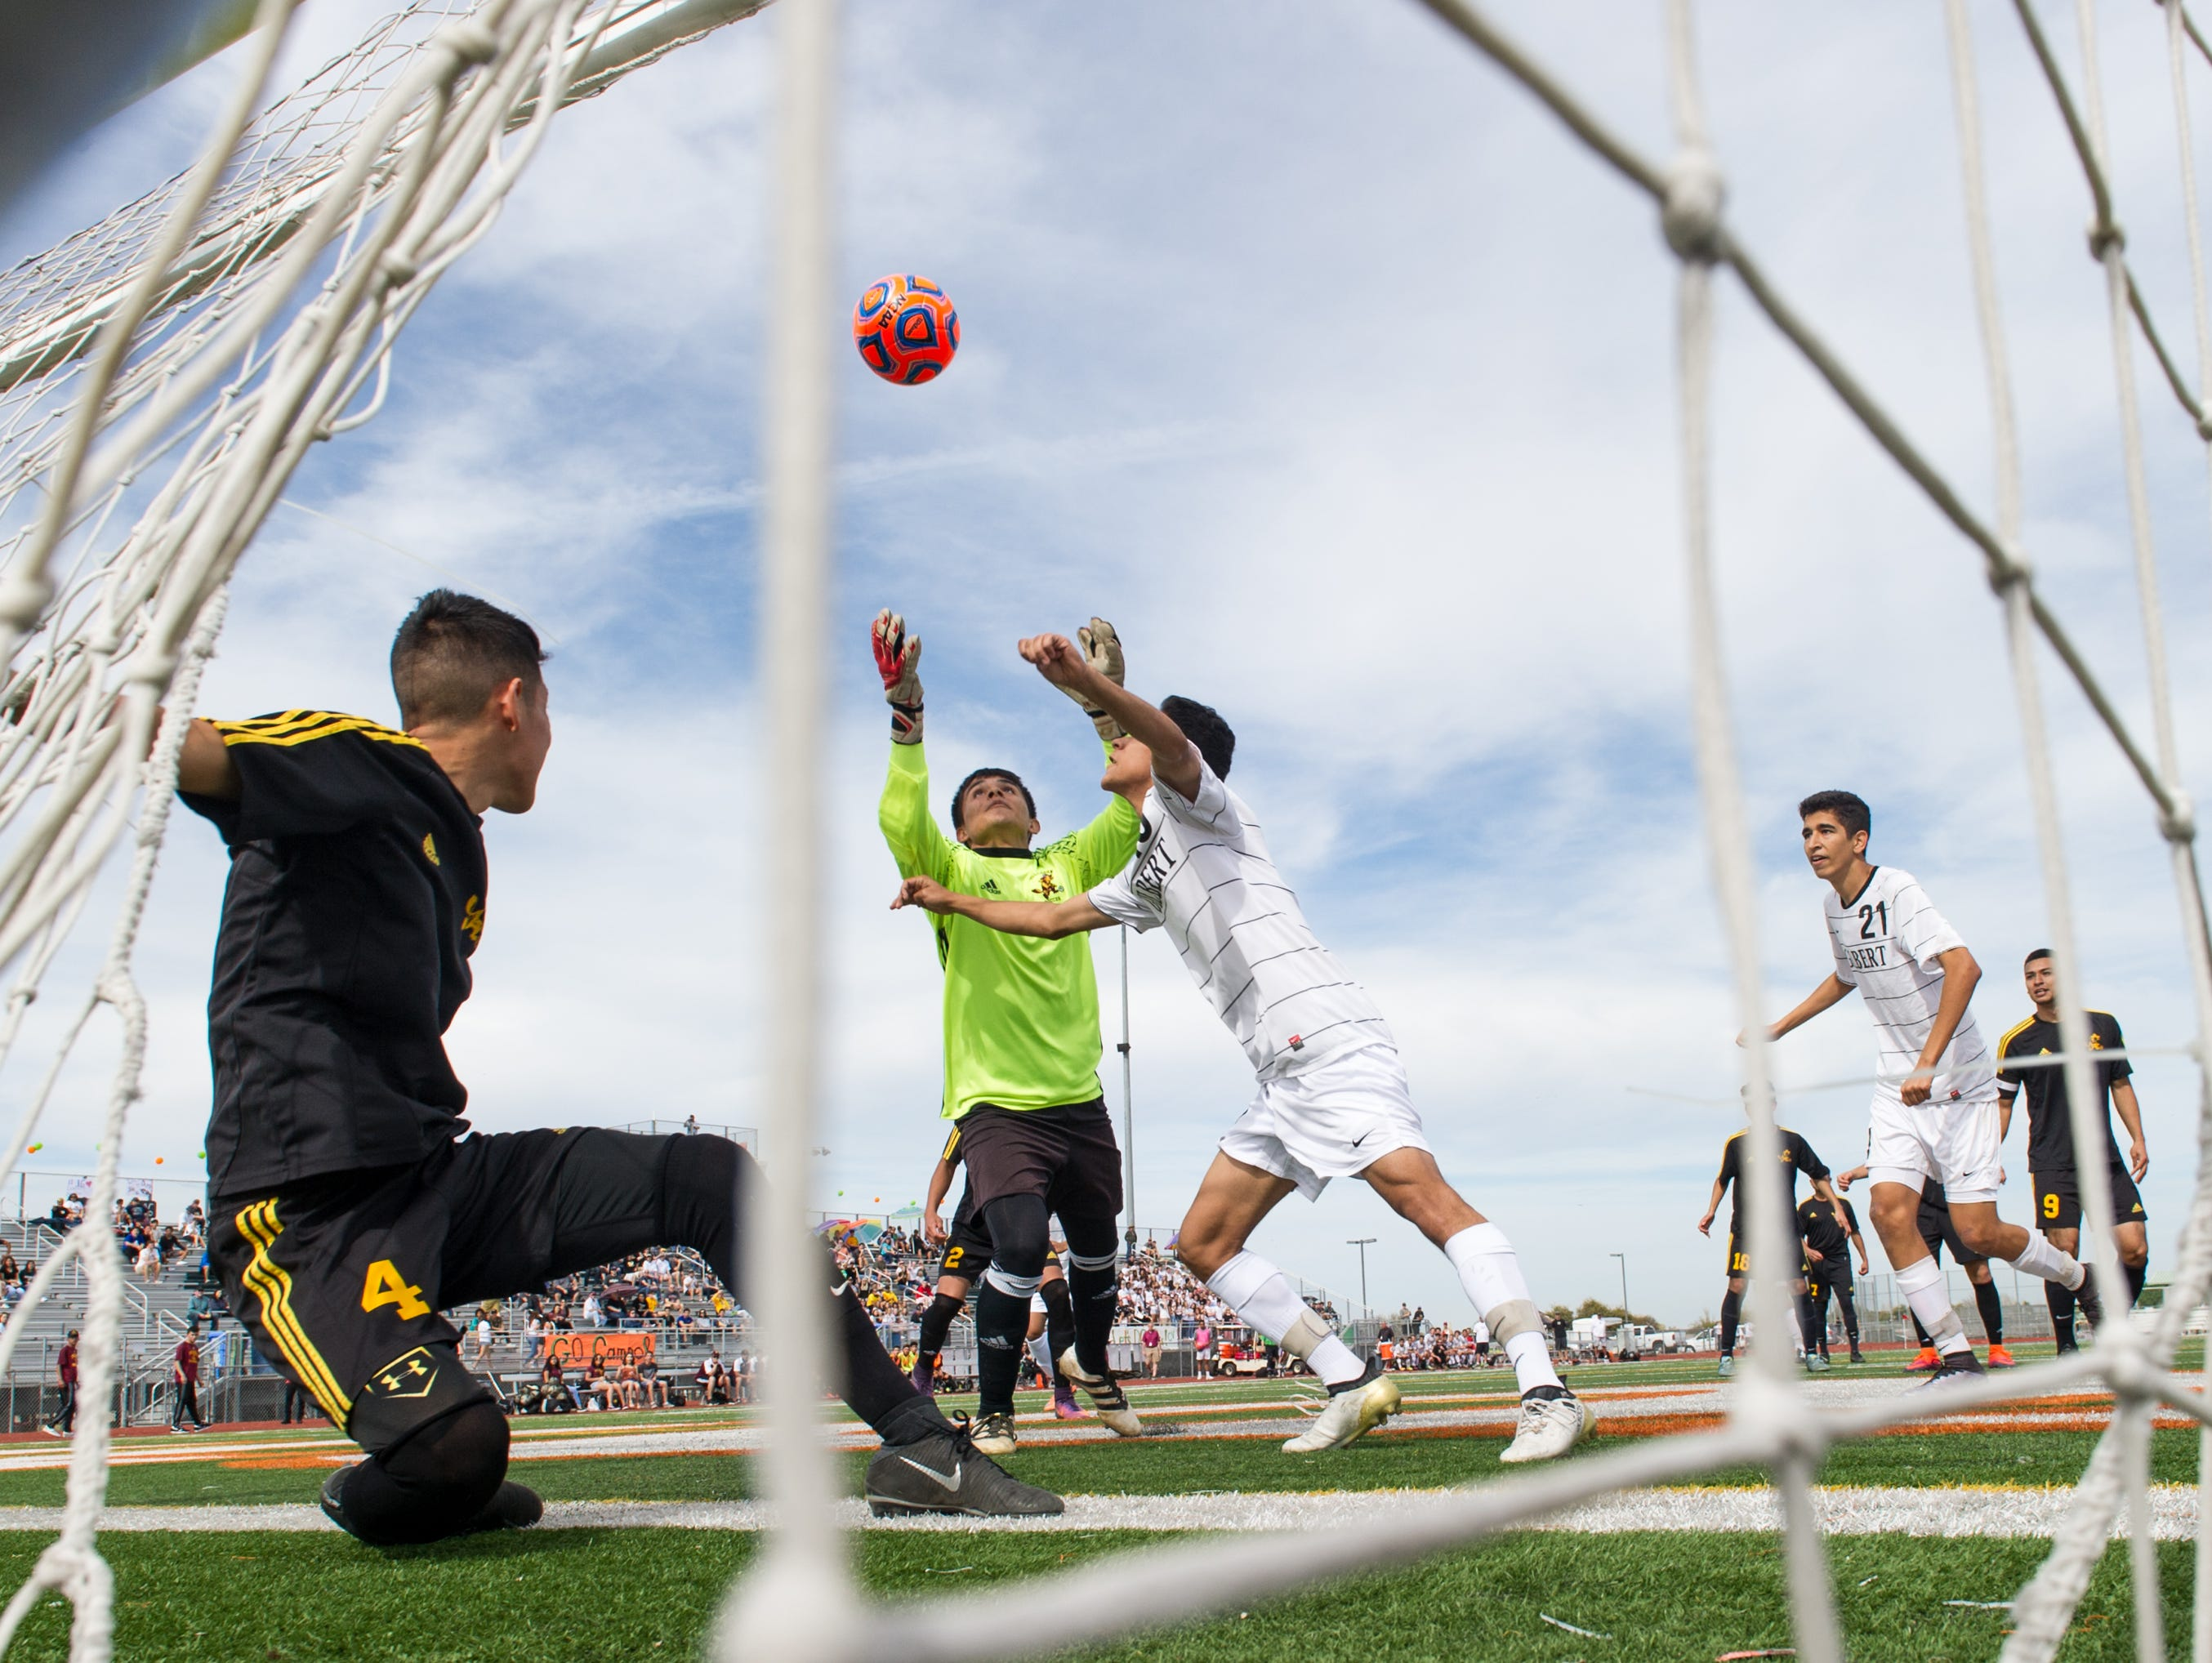 Tolleson's Alan Cazares (0) saves a goal Gilbert's Moises Serda Sevilla (13) during the first half of their 6A Conference state championship game on Saturday.